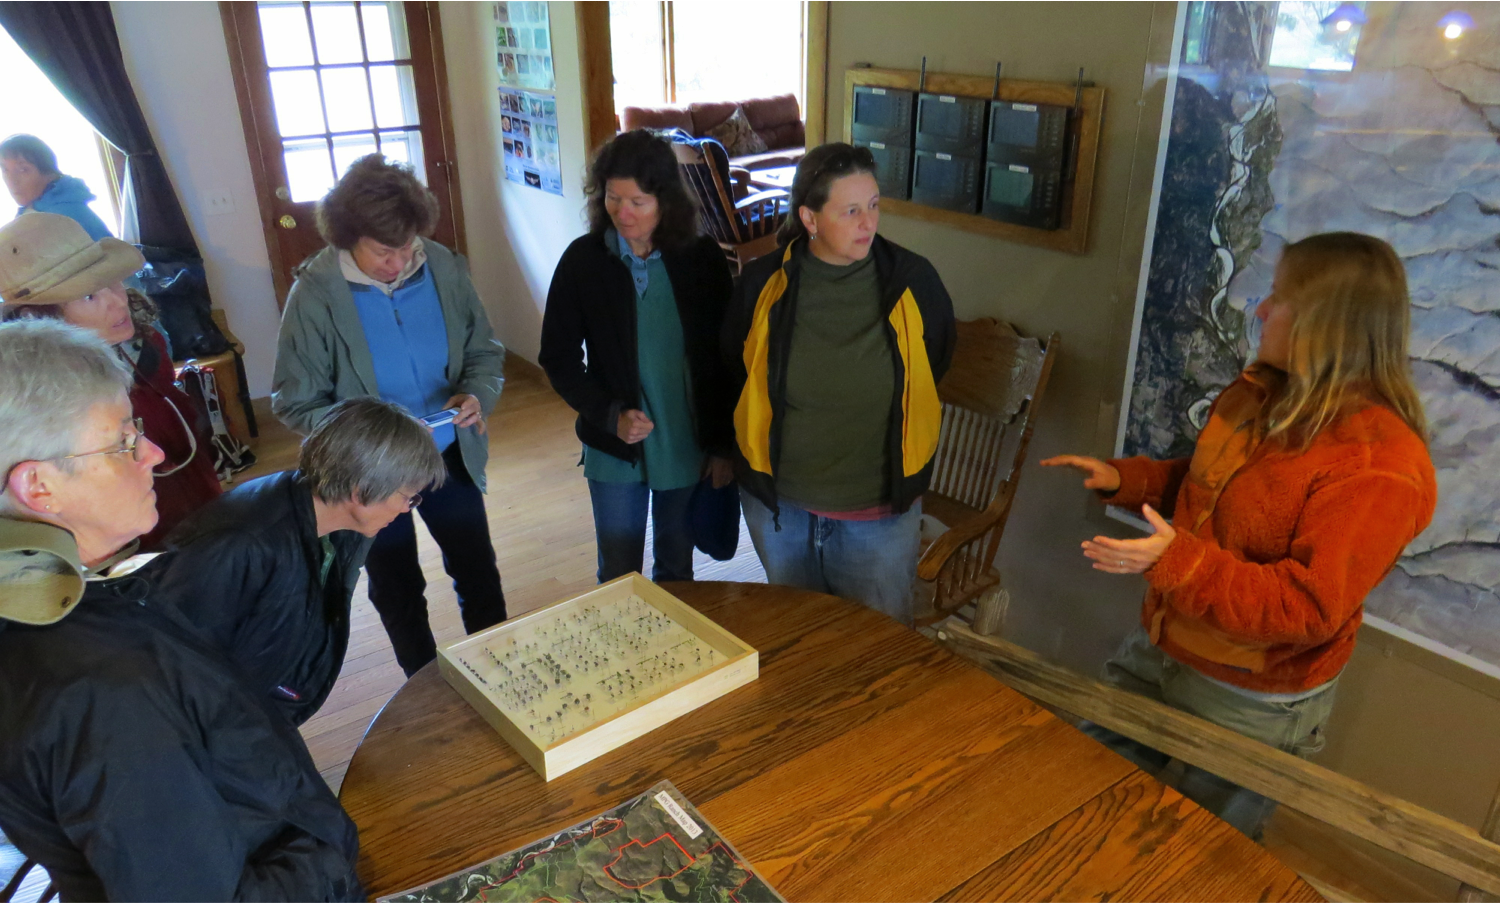 Last Saturday a group from the Clark Fork chapter of the Montana Native Plant Society came to learn about MPG's native bee monitoring efforts.  Folks asked great questions about the ranch's history and MPG's many ongoing research projects.